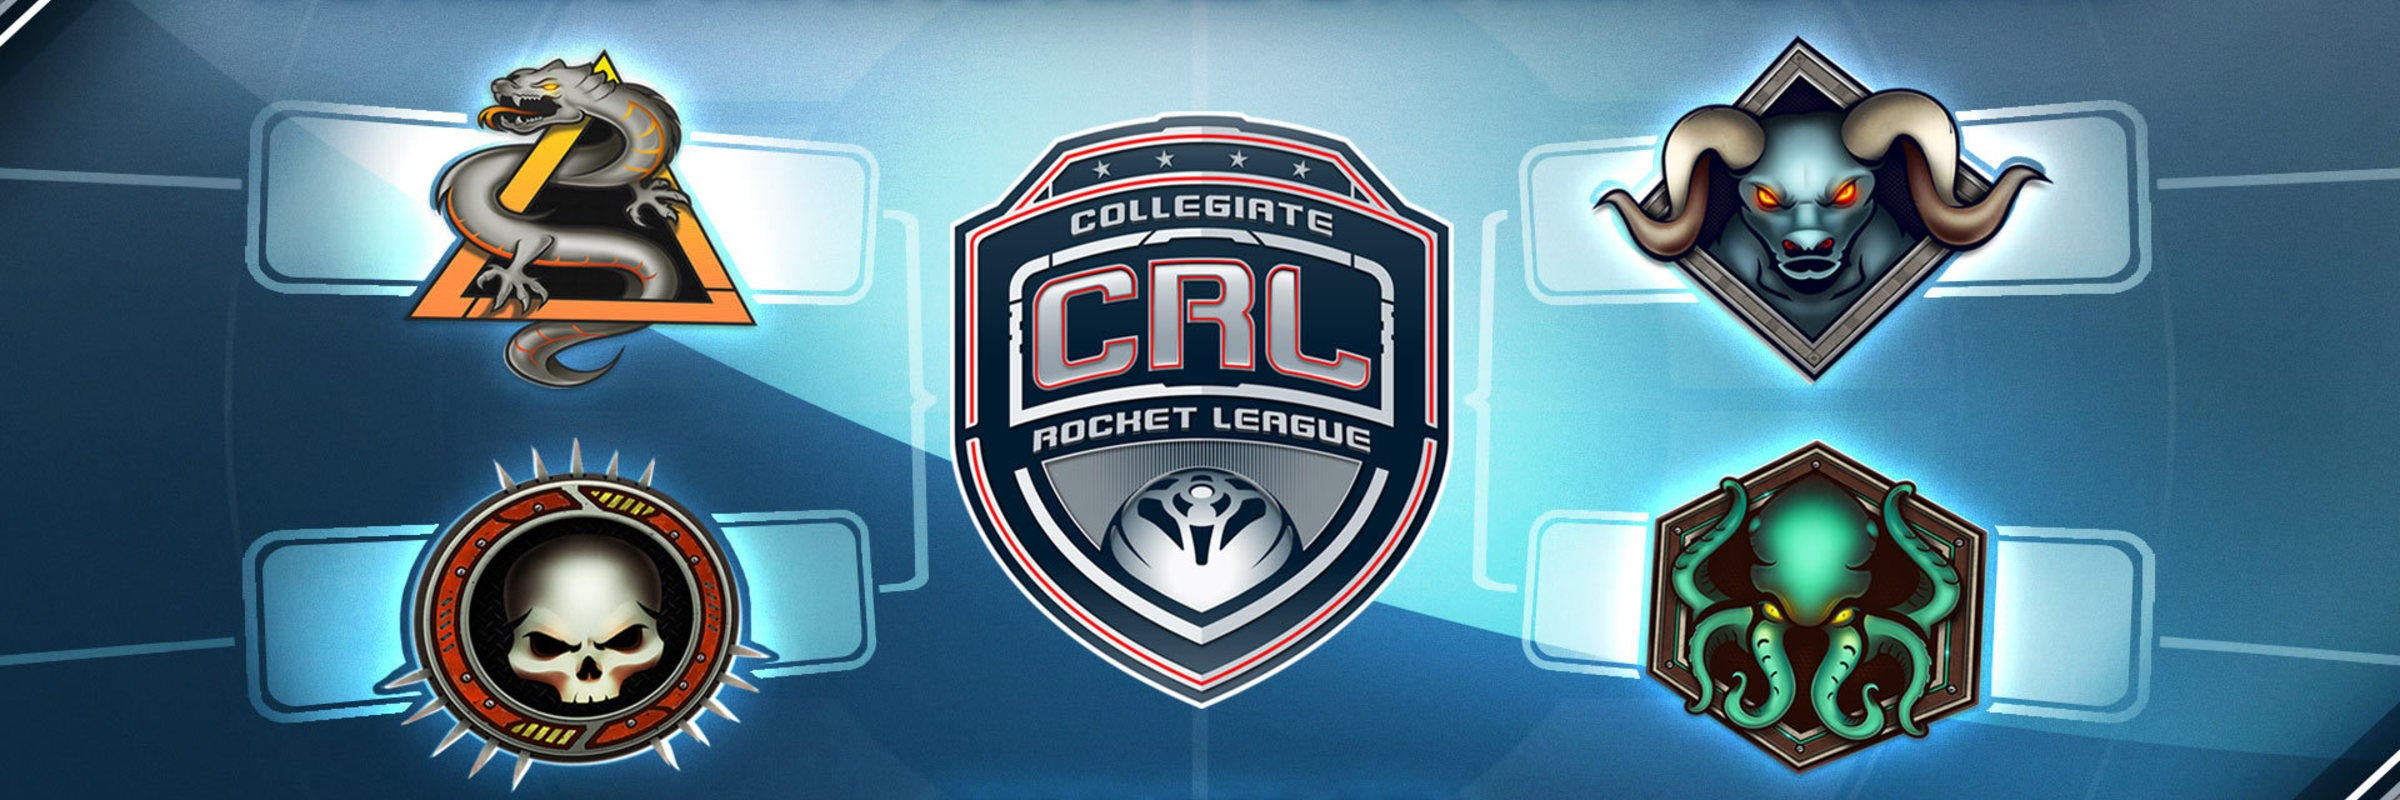 CRL Top Four Preview: University of North Texas & Pennsylvania State University Image